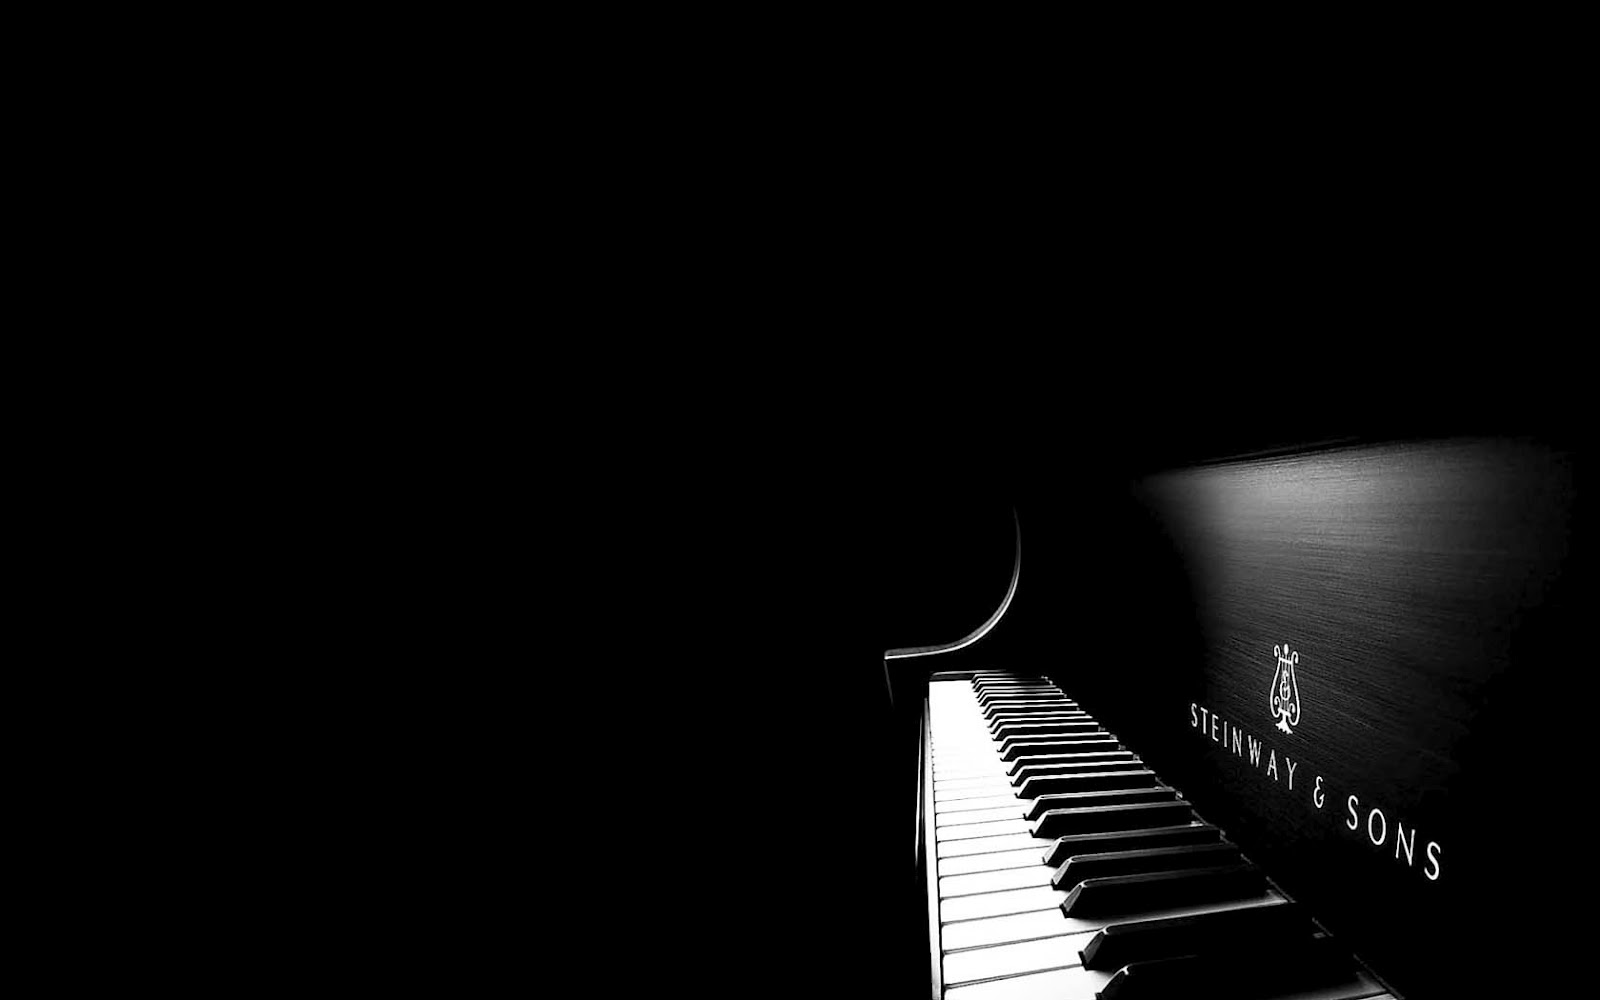 Music Hd Wallpaper #33576 Hd Wallpapers Background